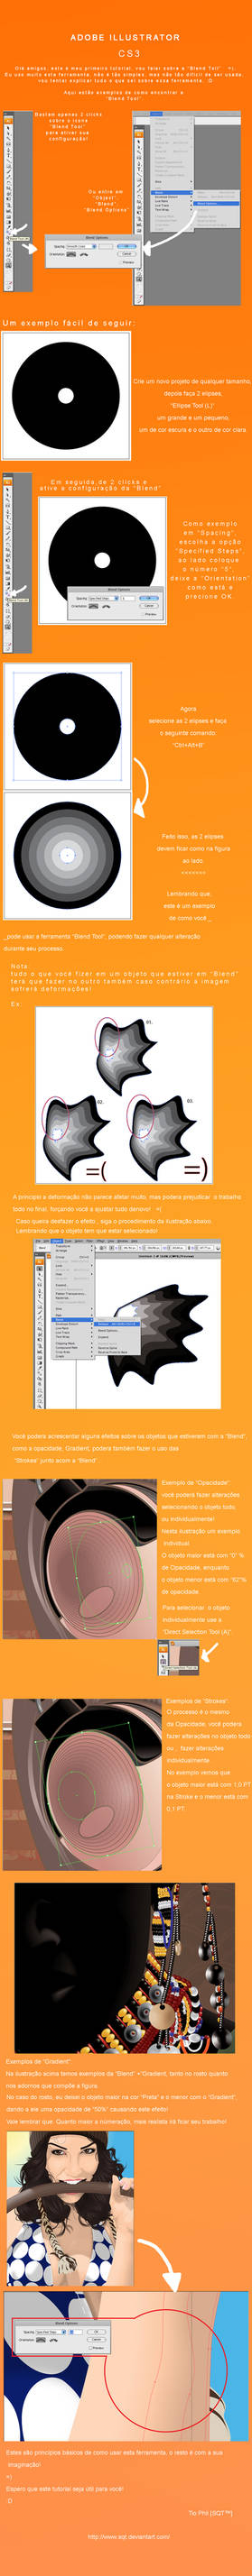 Tutorial Vector Art Blend Tool